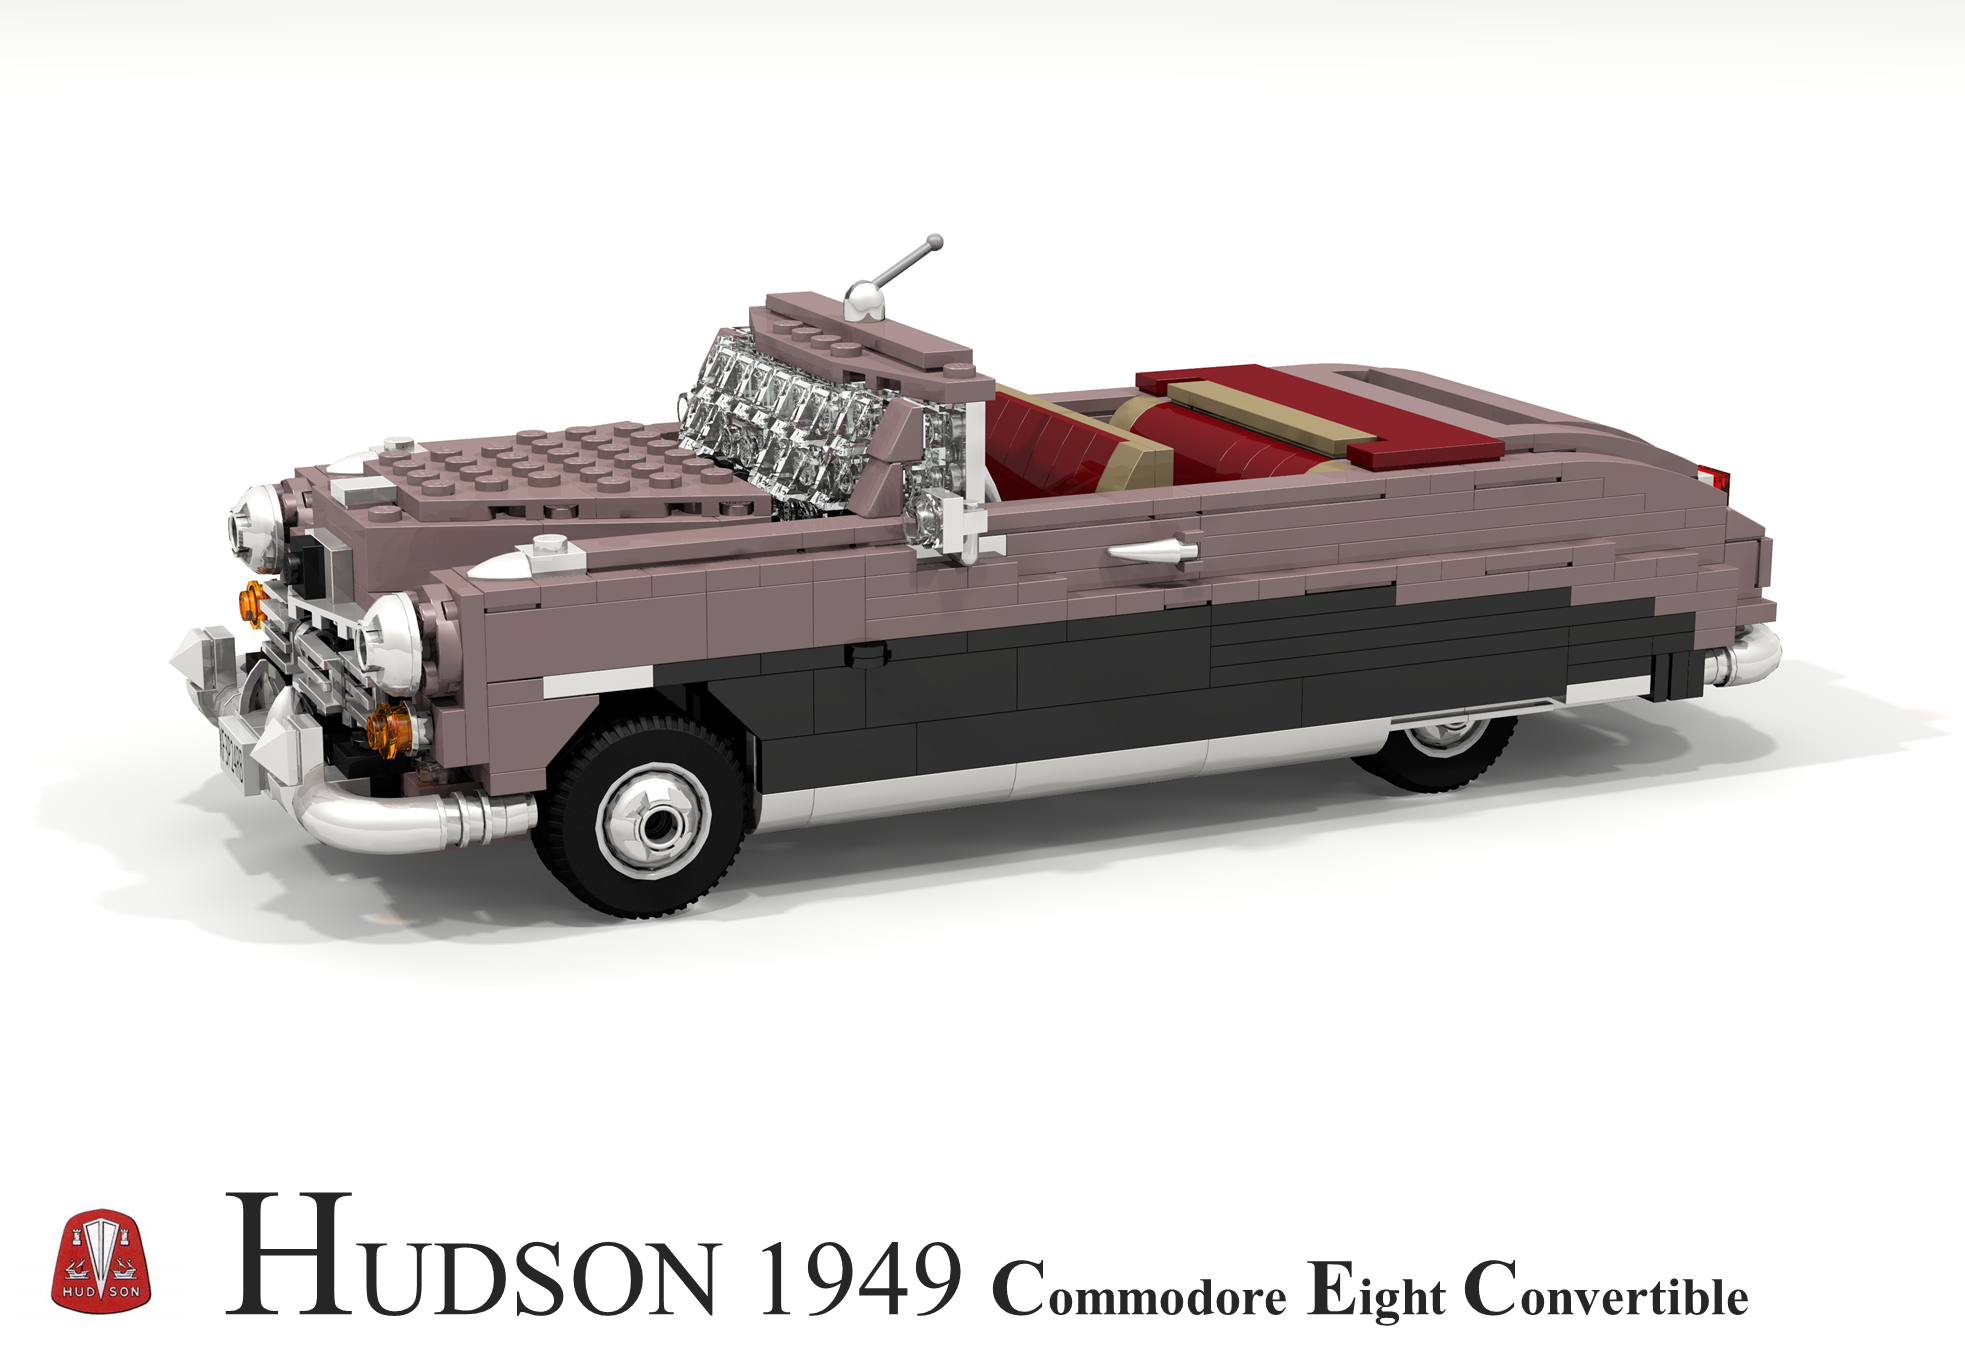 hudson_1949_commodore_eight_convertible_05.png